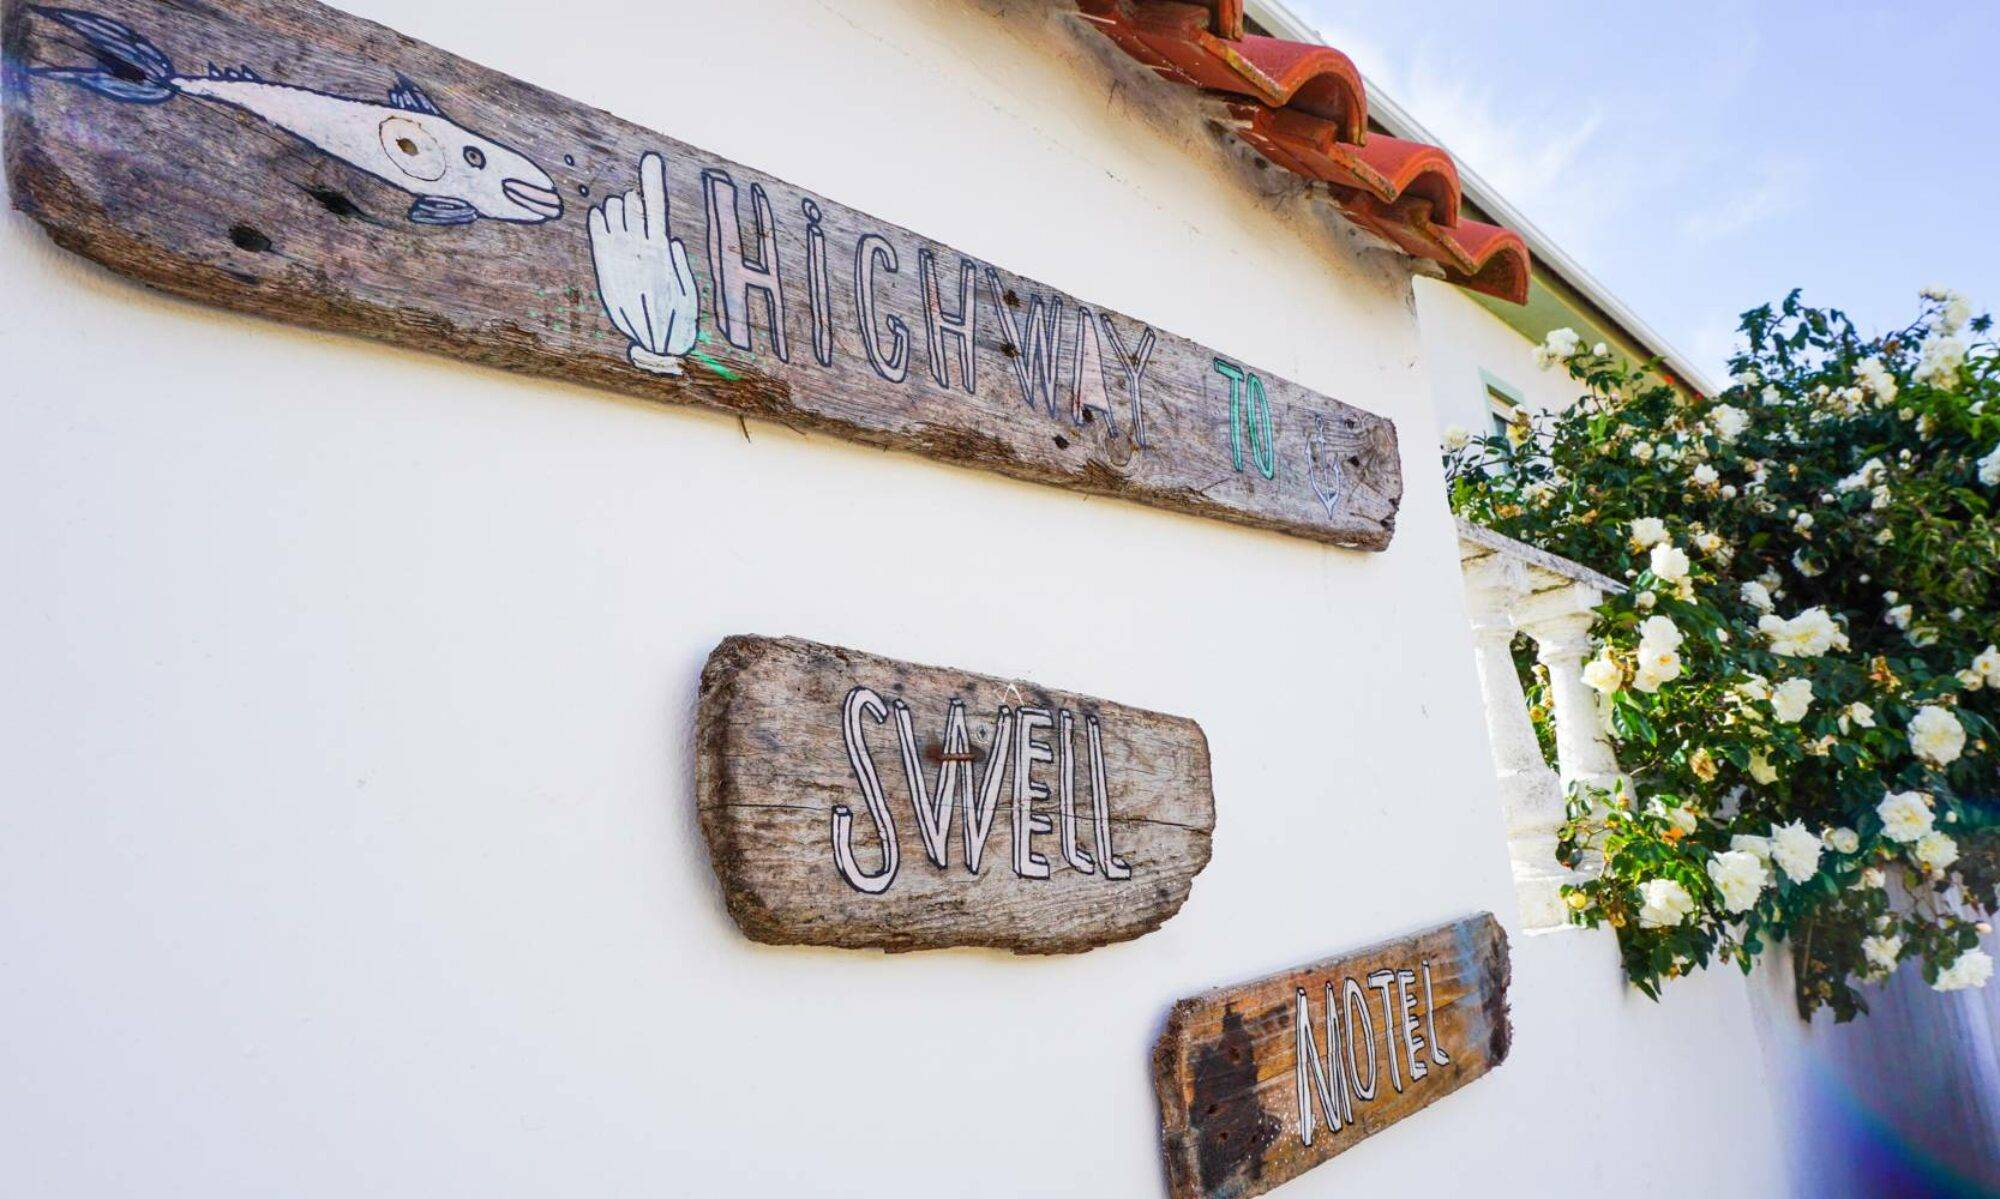 Surfhouse and Hostel in Baleal, Peniche